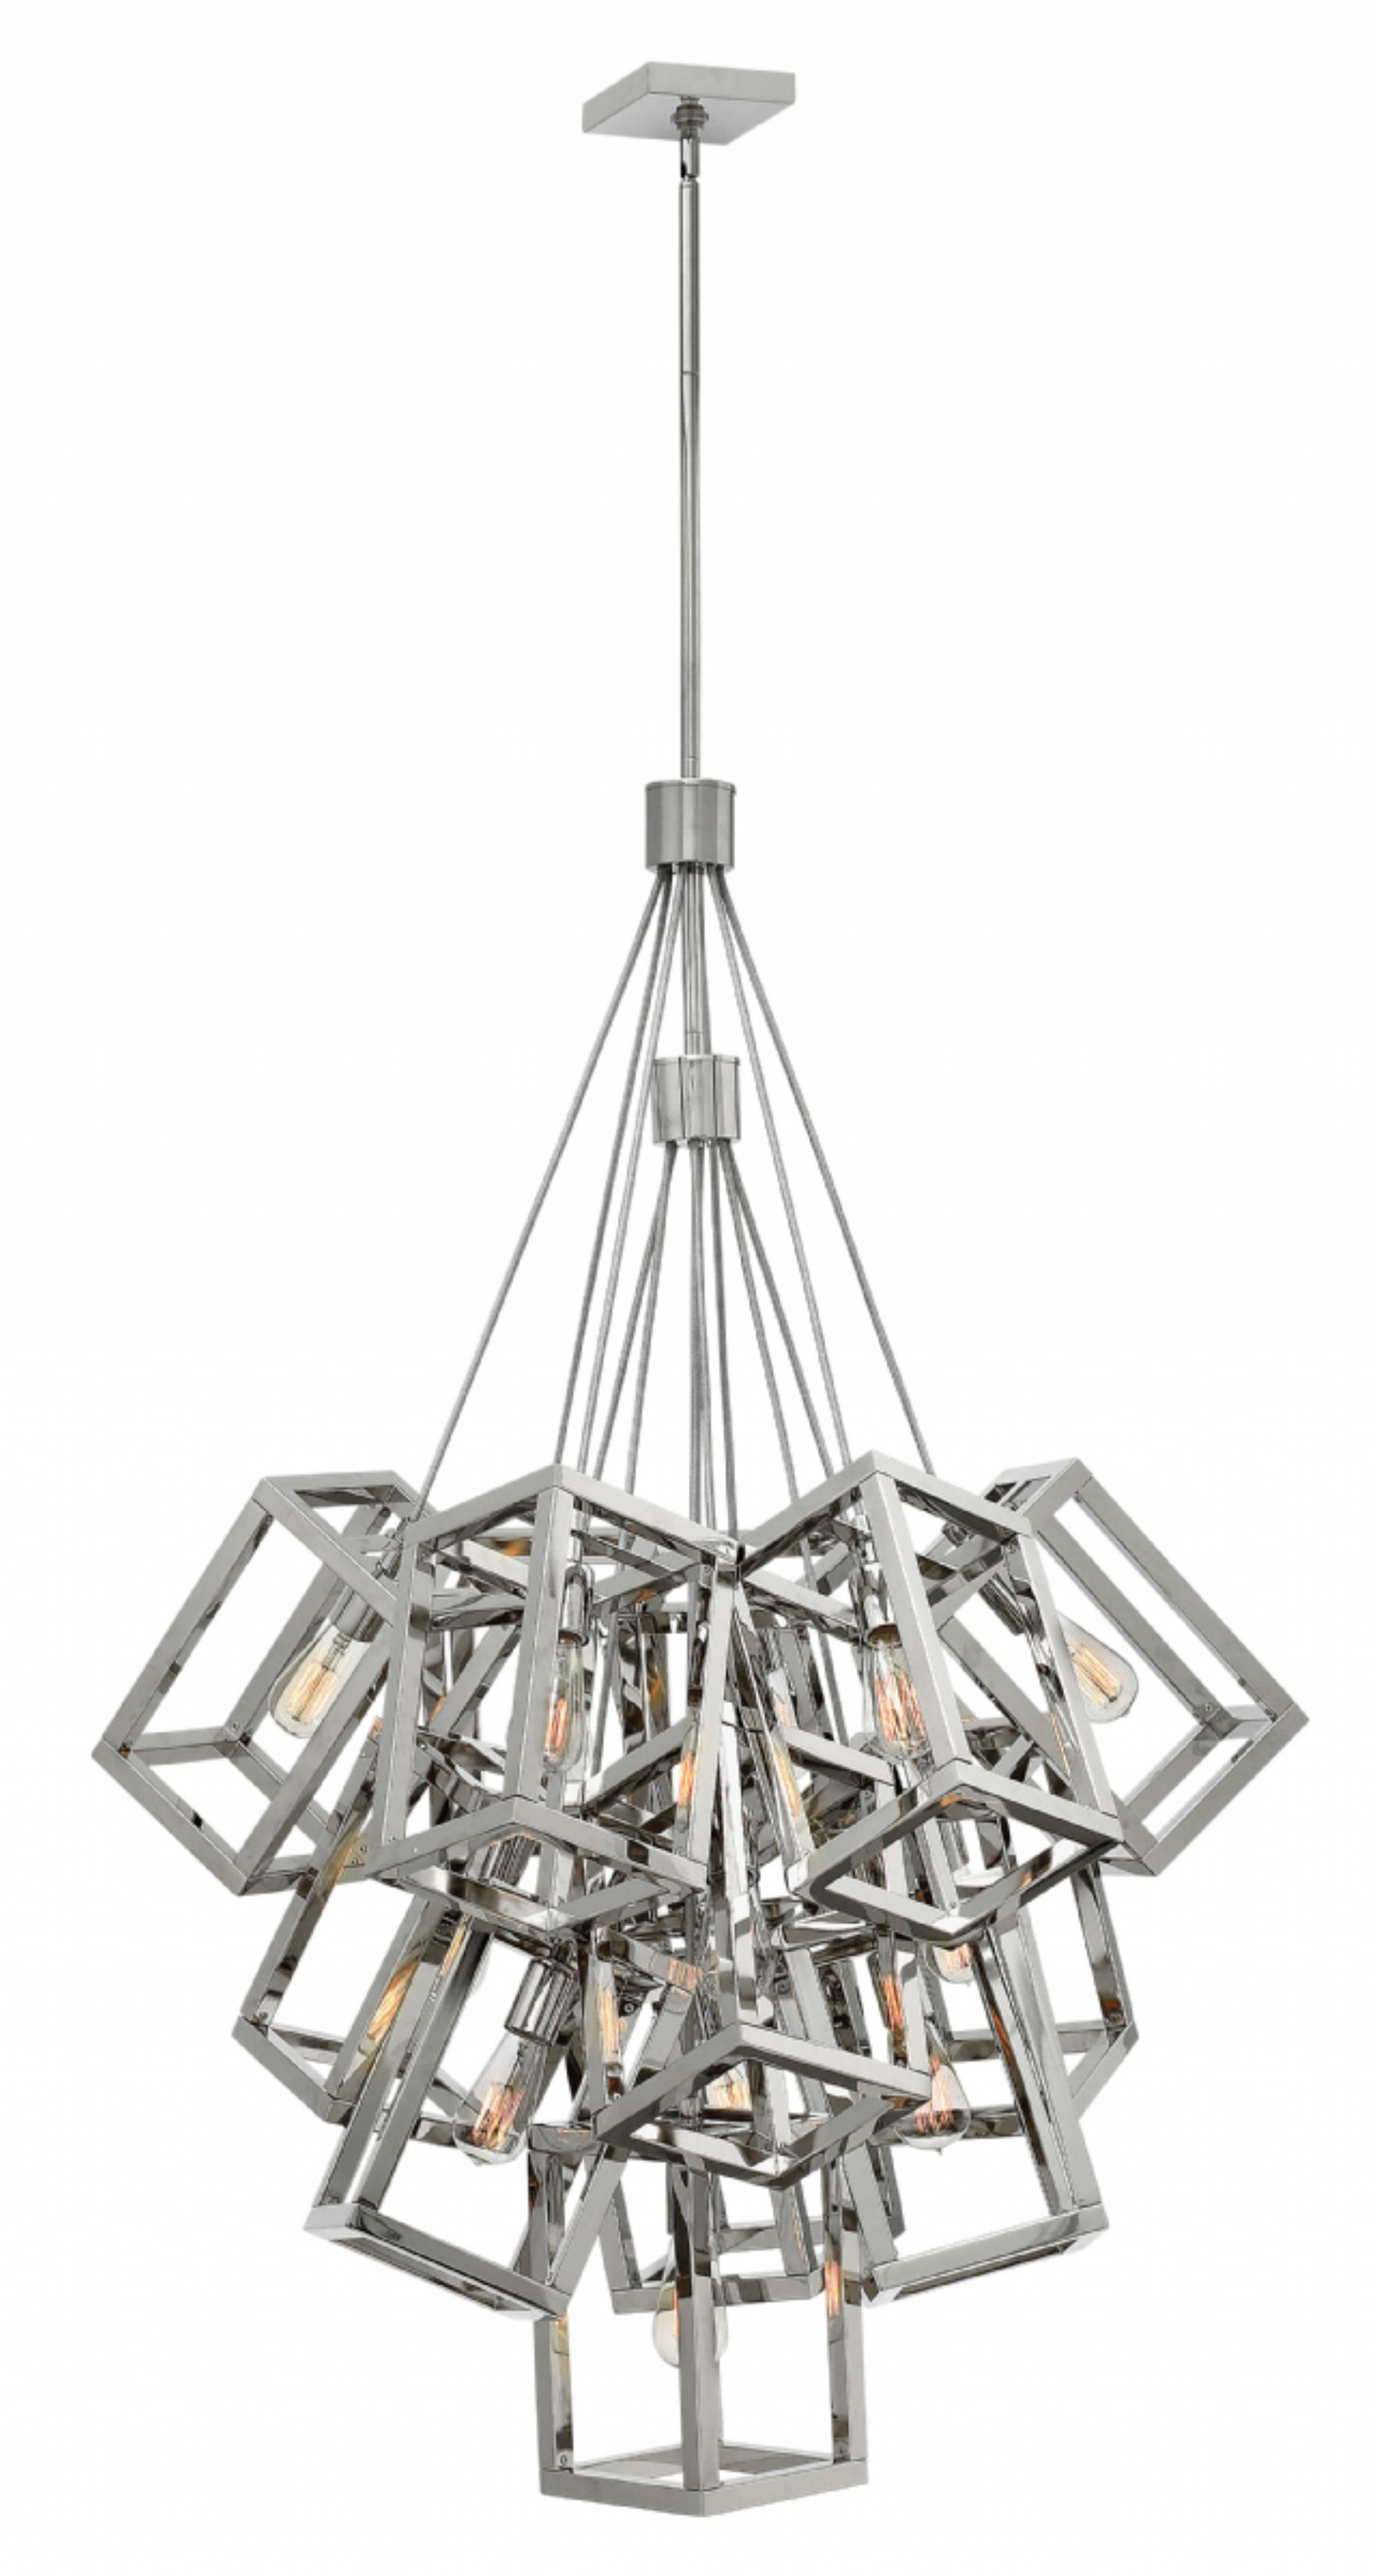 Hinkley Lighting carries many Polished Nickel Ensemble